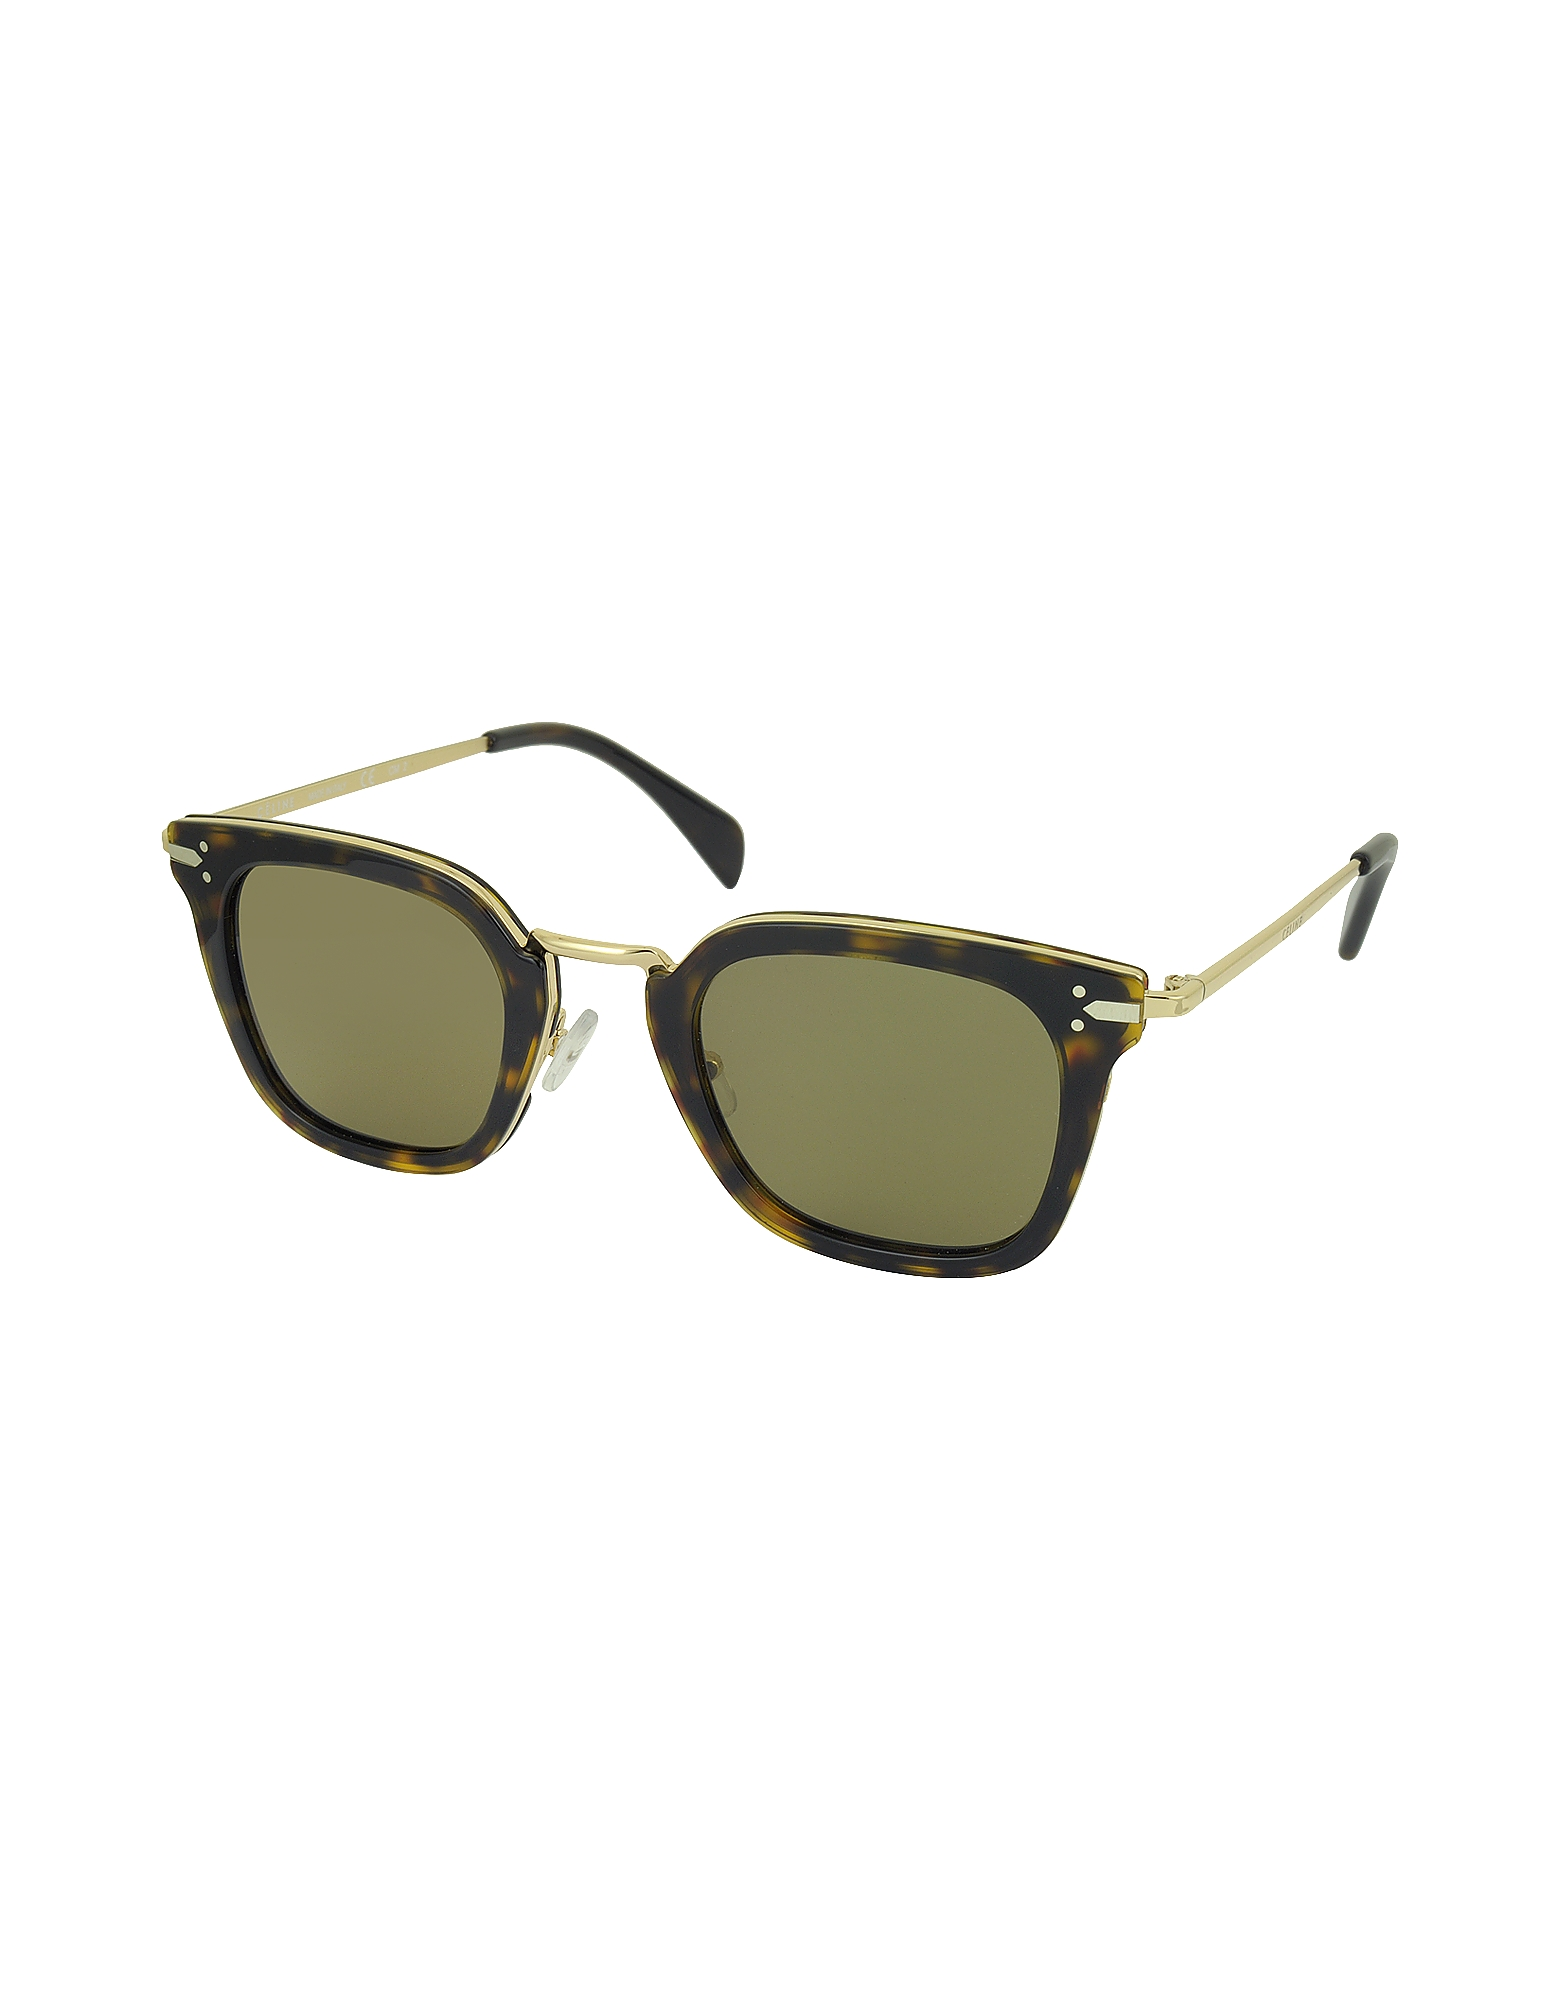 VIC CL 41402/S Acetate and Gold Metal Cat Eye Women's Sunglasses от Forzieri.com INT